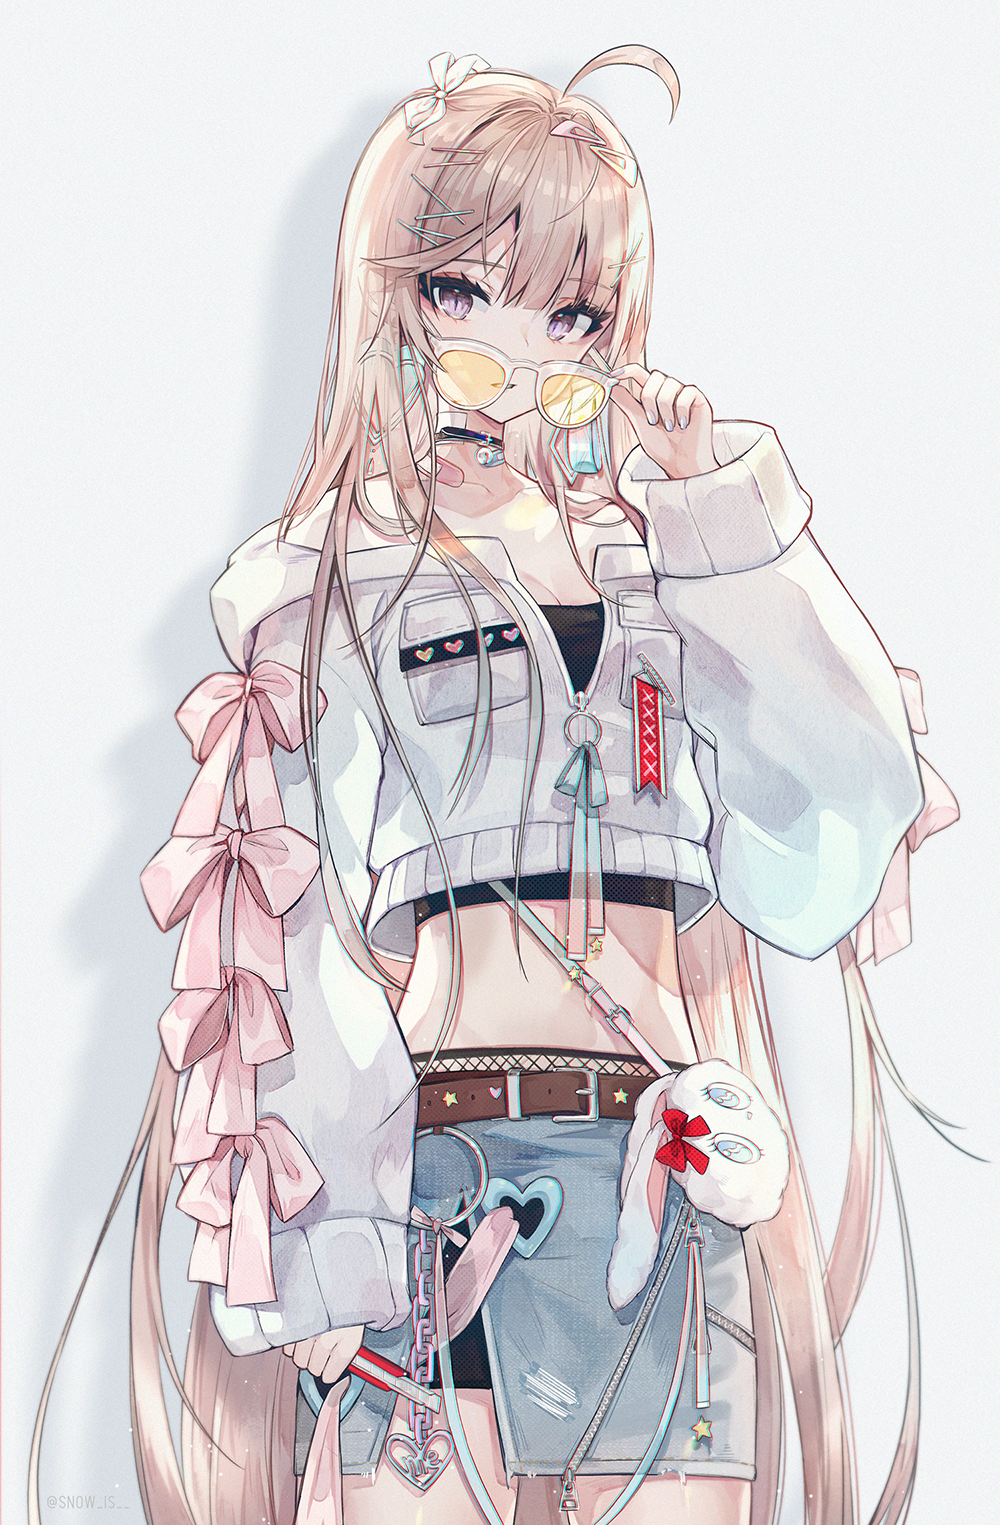 Anime 1000x1525 anime anime girls digital art artwork simple background vertical portrait display long hair blonde blue eyes jacket skirt sunglasses original characters